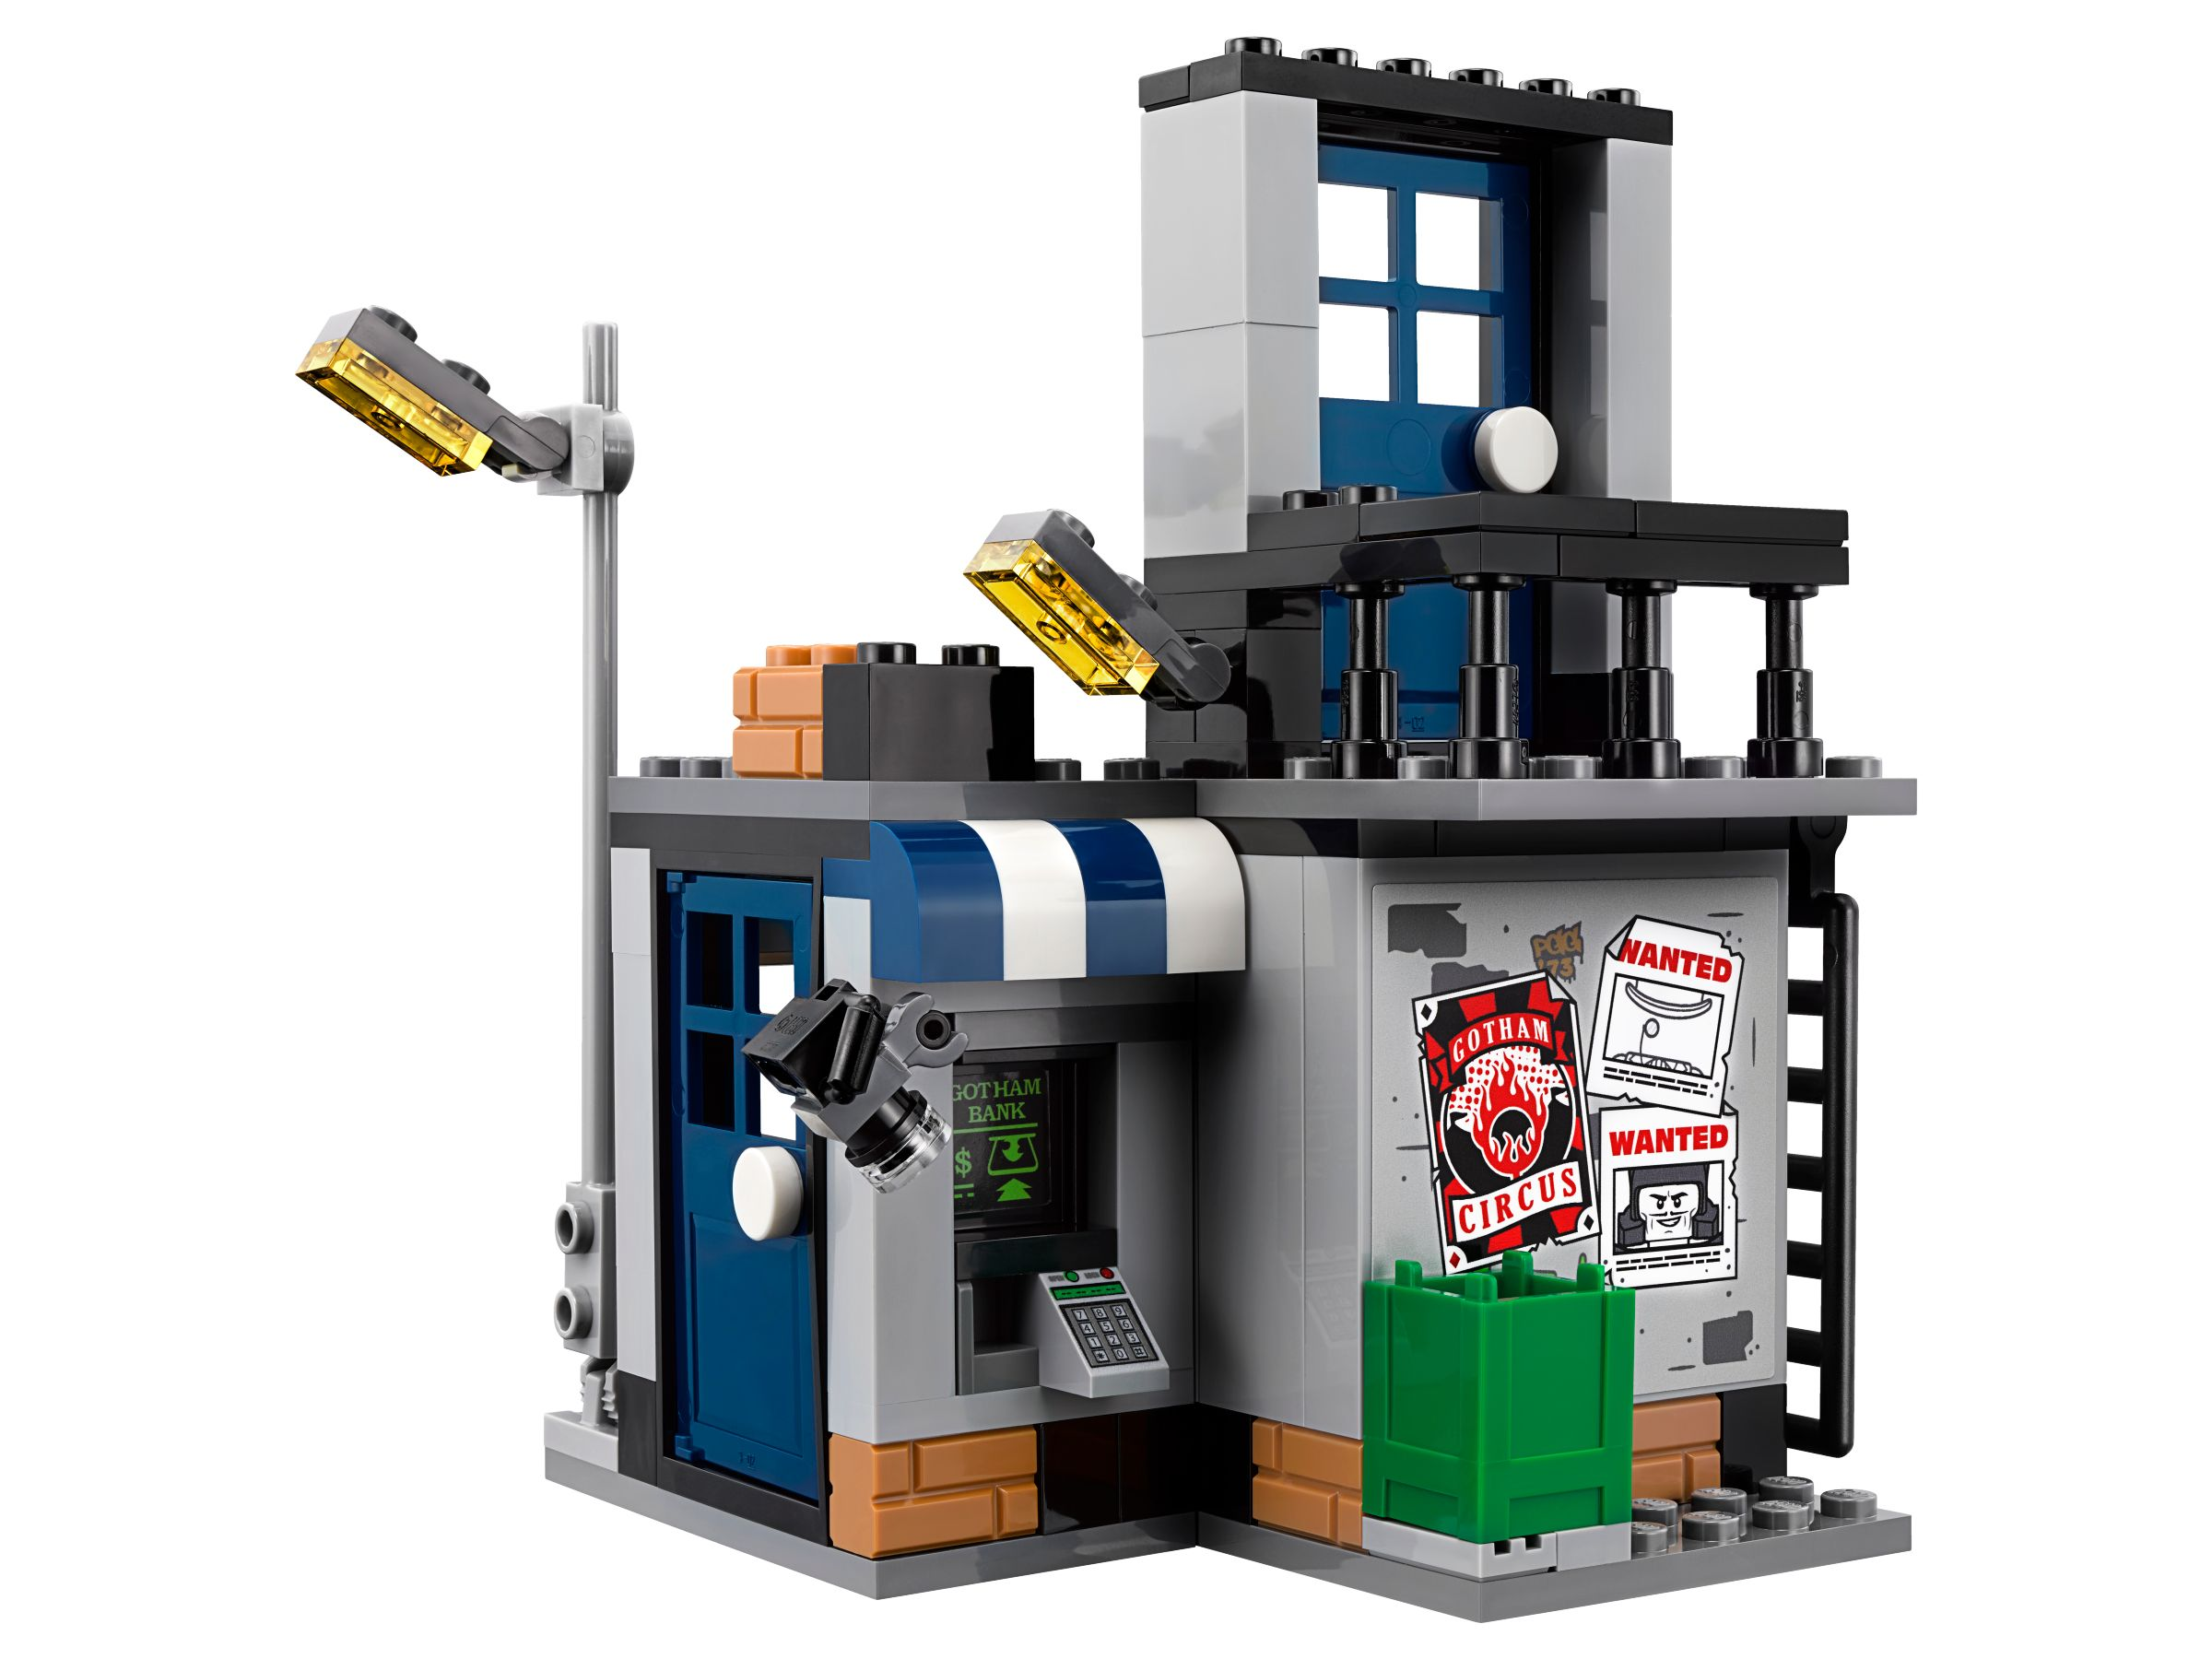 LEGO The LEGO Batman Movie 70921 Harley Quinn Kanonenkugelattacke LEGO_70921_alt4.jpg